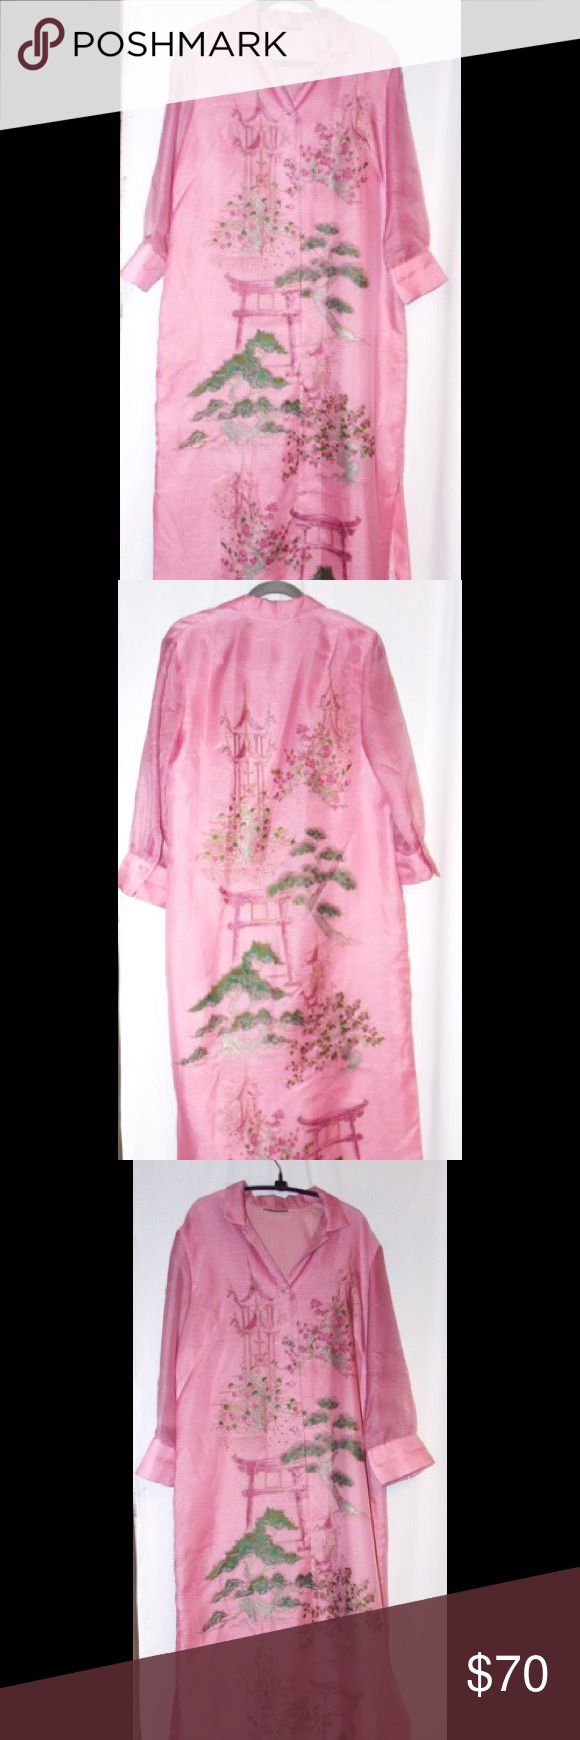 60s Vintage Asian Oriental Designer gown maxi Alfred Shaheen The Master Printer 1960s glorious raspberry sherbet maxi dress! Hand made and hand screen printed, this has serious presence. Measurements will be in the COMMENTS section - this was custom made, so no size tag. Fabric is like a poly dupioni with a sizzling shimmer. Pagoda, cherry blossom trees in silver green...it's incredible with same print front and back. I have 3 of these gowns from same origin - estate sale 90s. Have been in…